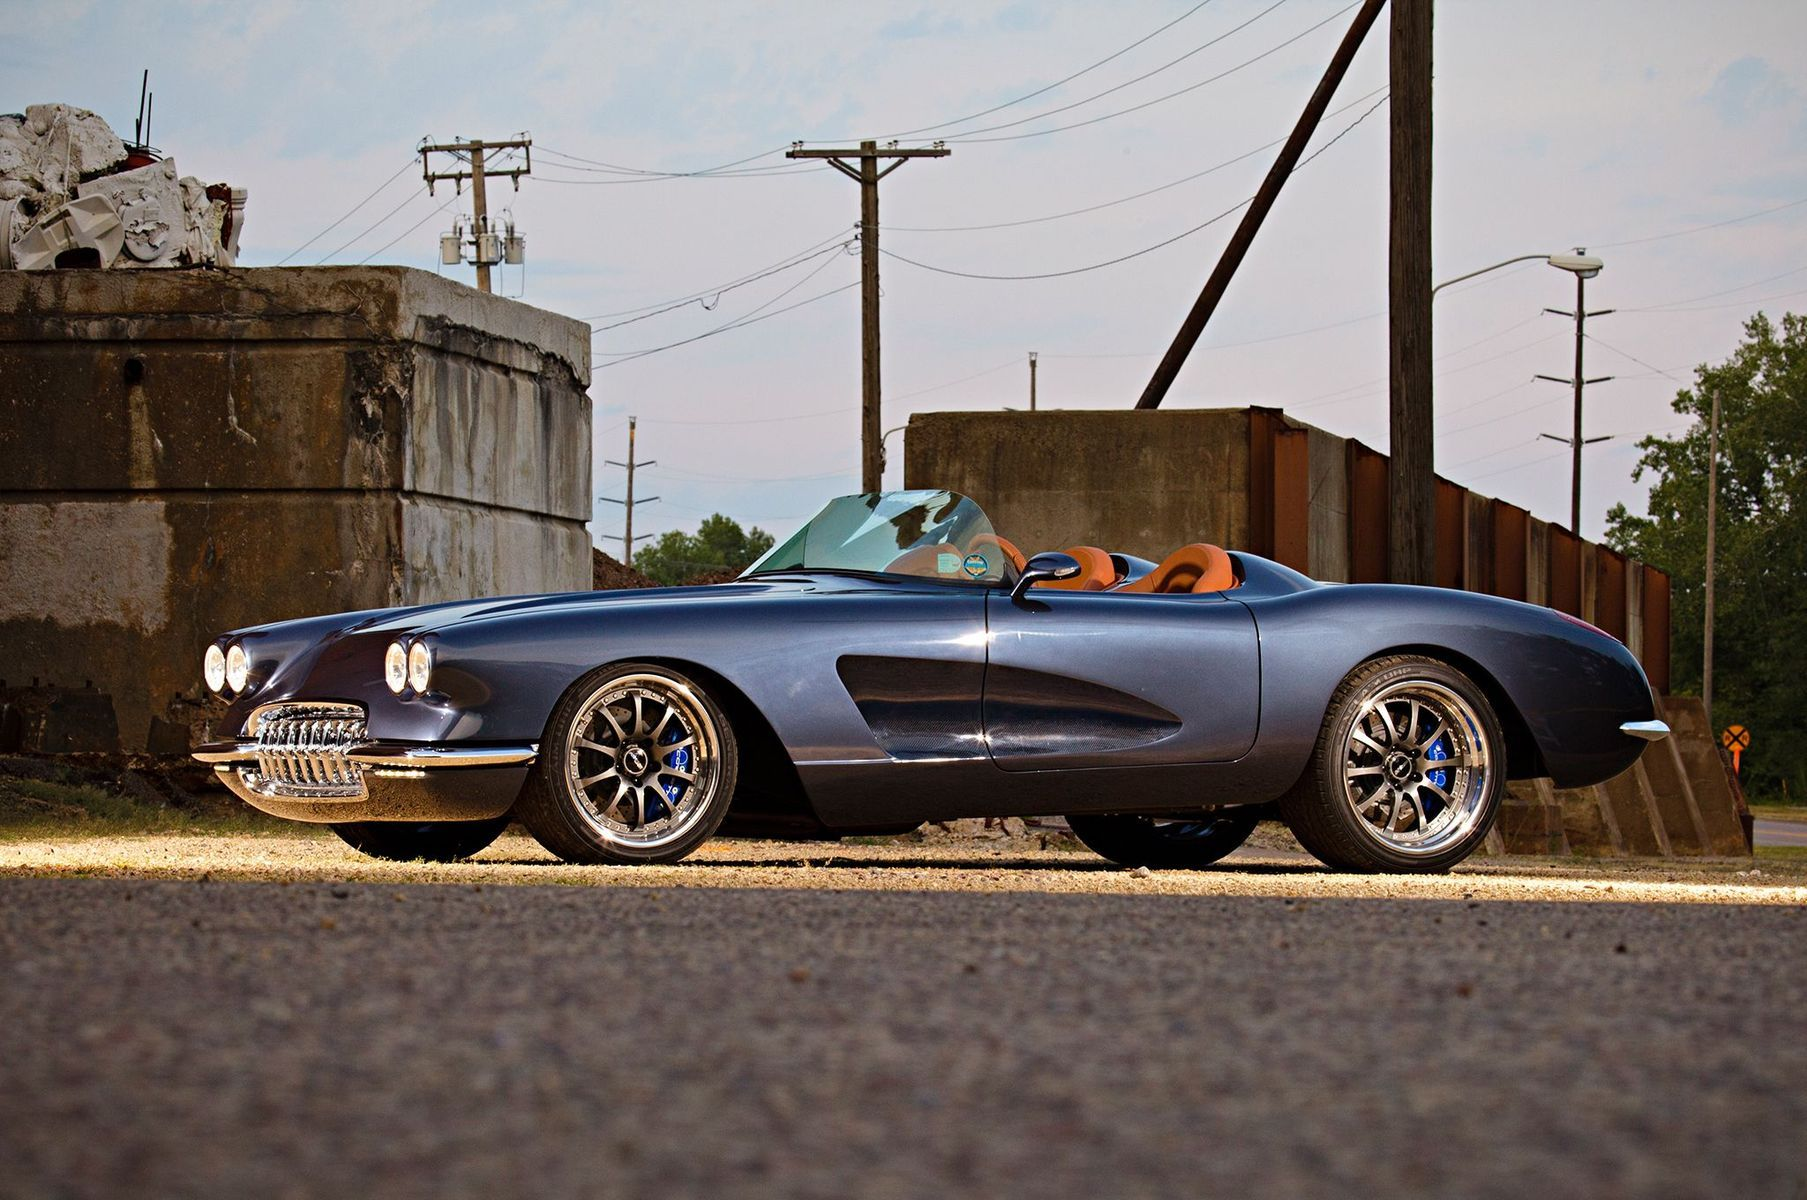 1959 Chevrolet Corvette | Gumer Alvero's Pro-Touring '59 Corvette on Forgeline ZX3R Wheels